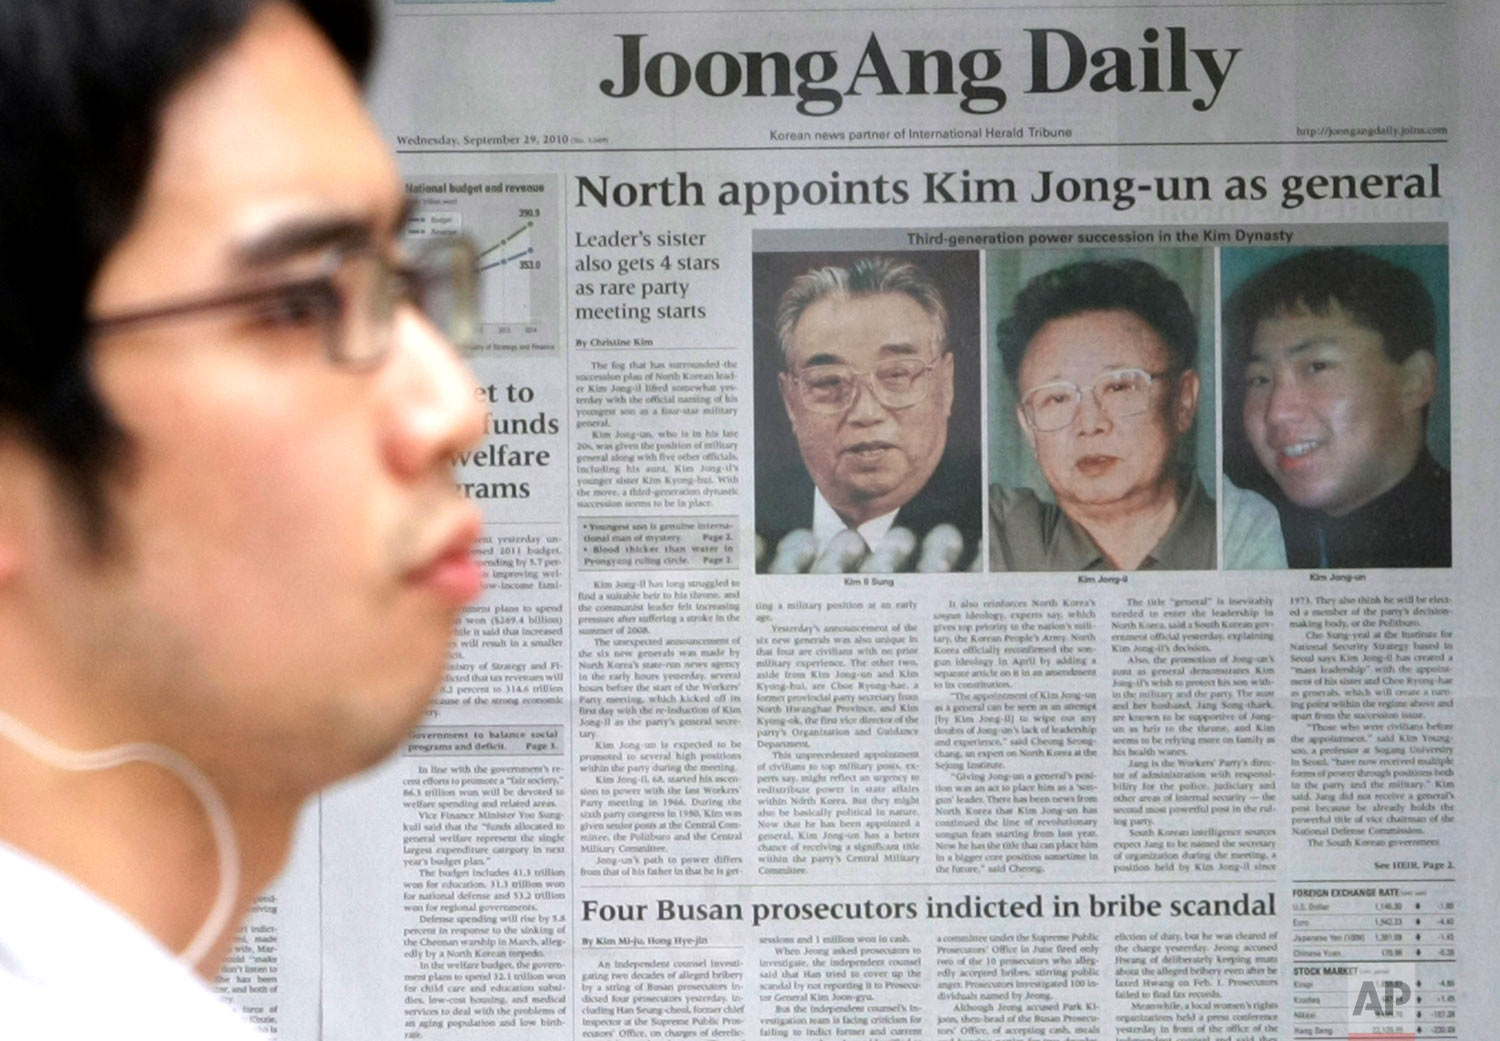 A man walks past a South Korean newspaper bearing photos of North Korean leader Kim Jong Il, center, his late father Kim Il Sung, left, and his youngest son Kim Jong Un, in Seoul, South Korea, on Sept. 29, 2010. (AP Photo/Ahn Young-joon)